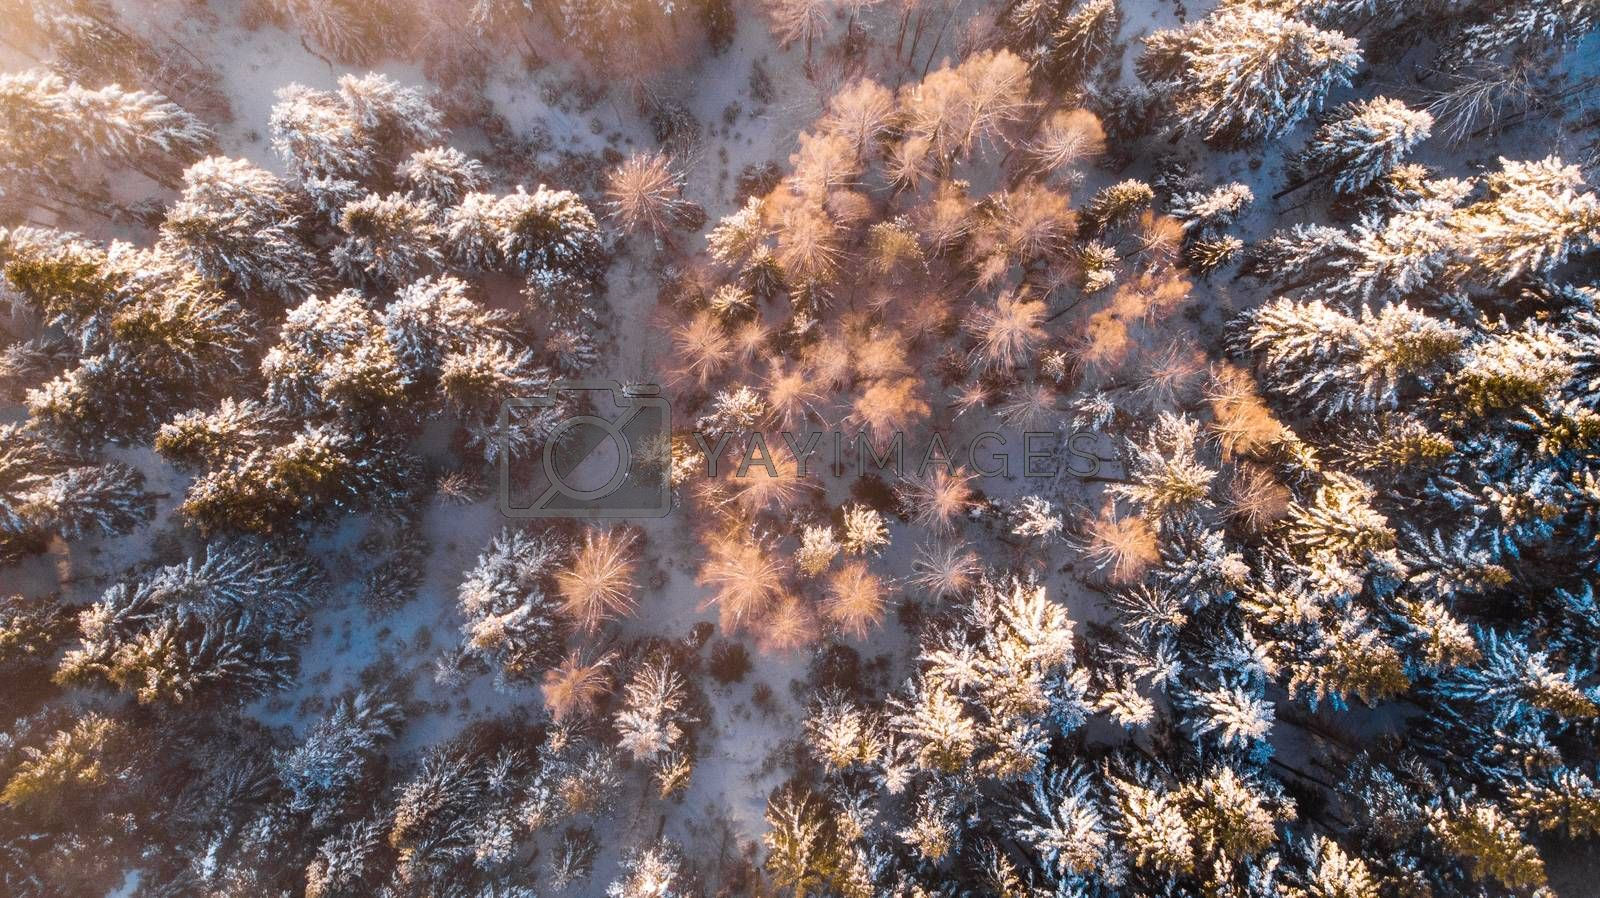 Beautiful Sunlight in Winter Wonderland. Trees Covered in Snow.  by merc67